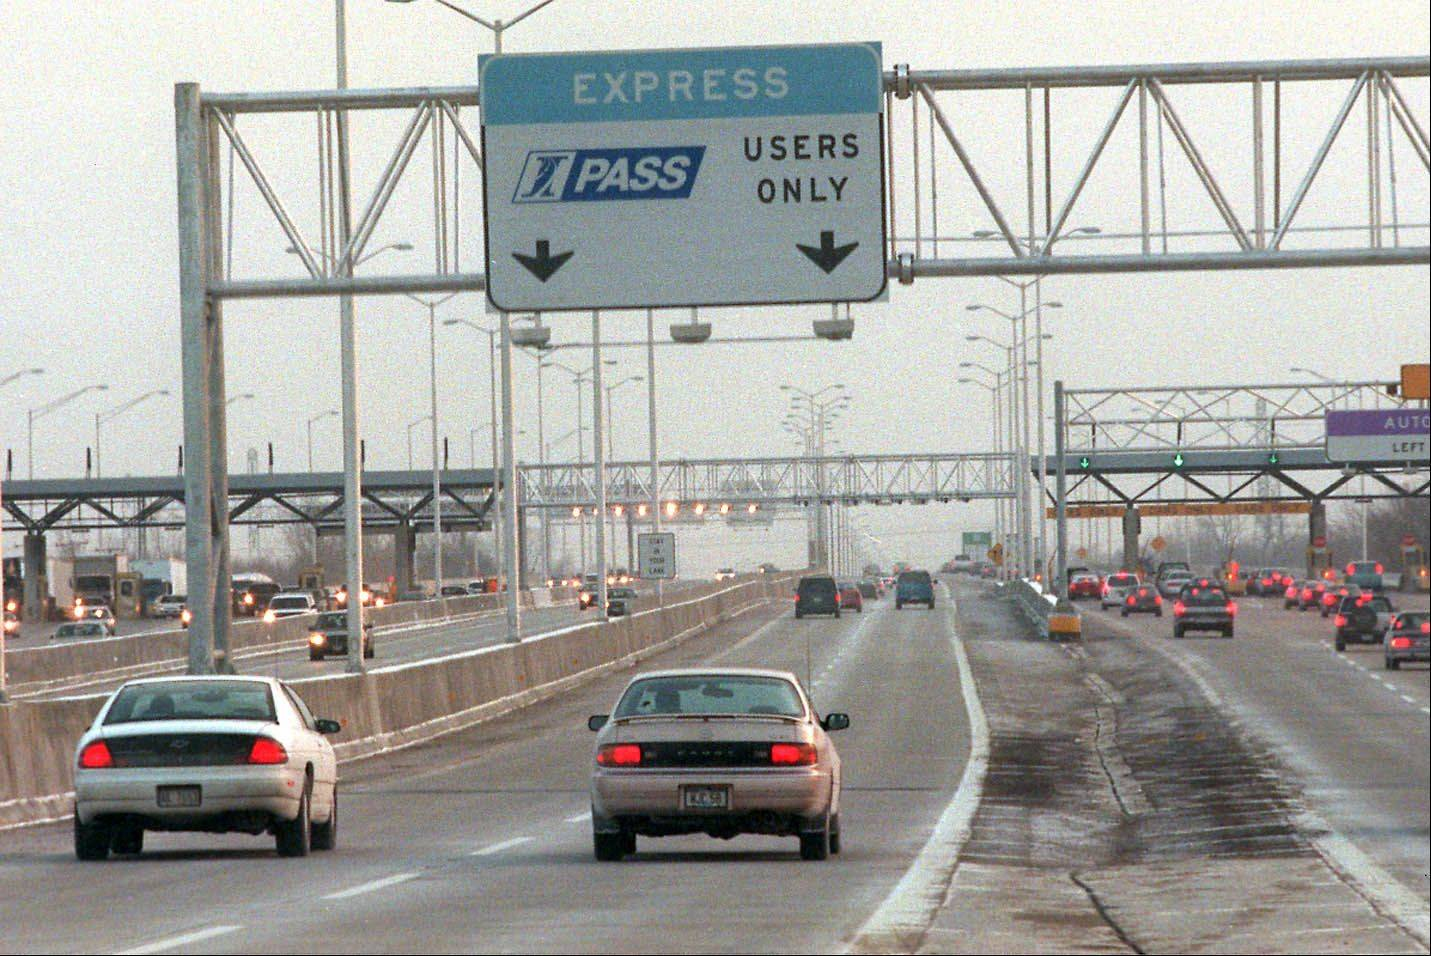 Daily Herald file photo Using an I-PASS could get a lot more interactive.